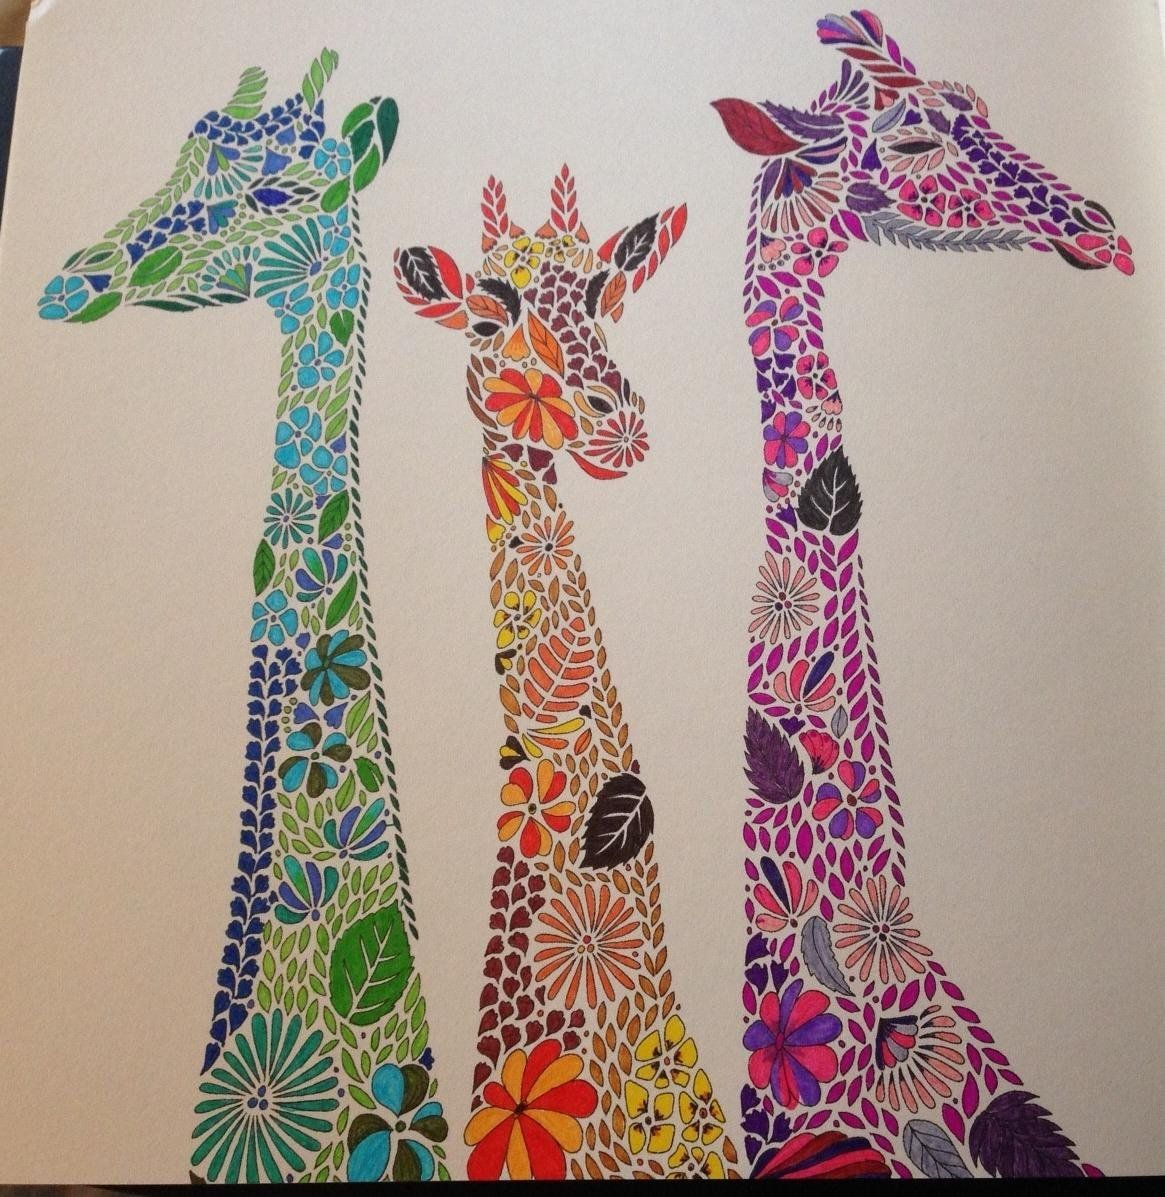 Millie Marotta's Animal Kingdom - A Colouring Book ...